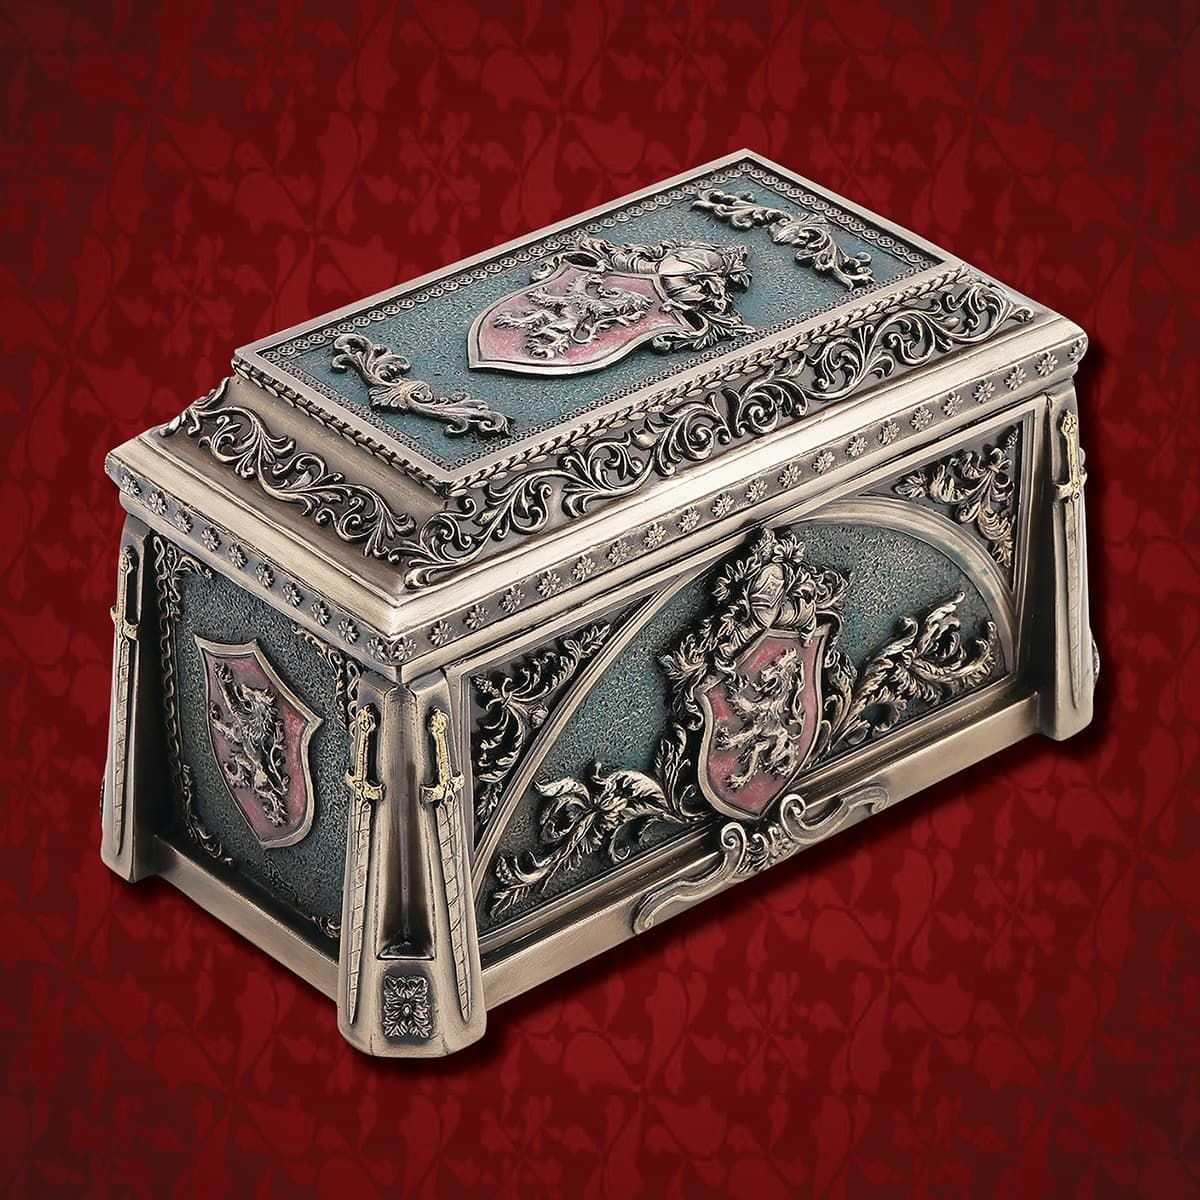 Lion Crest Trinket Box